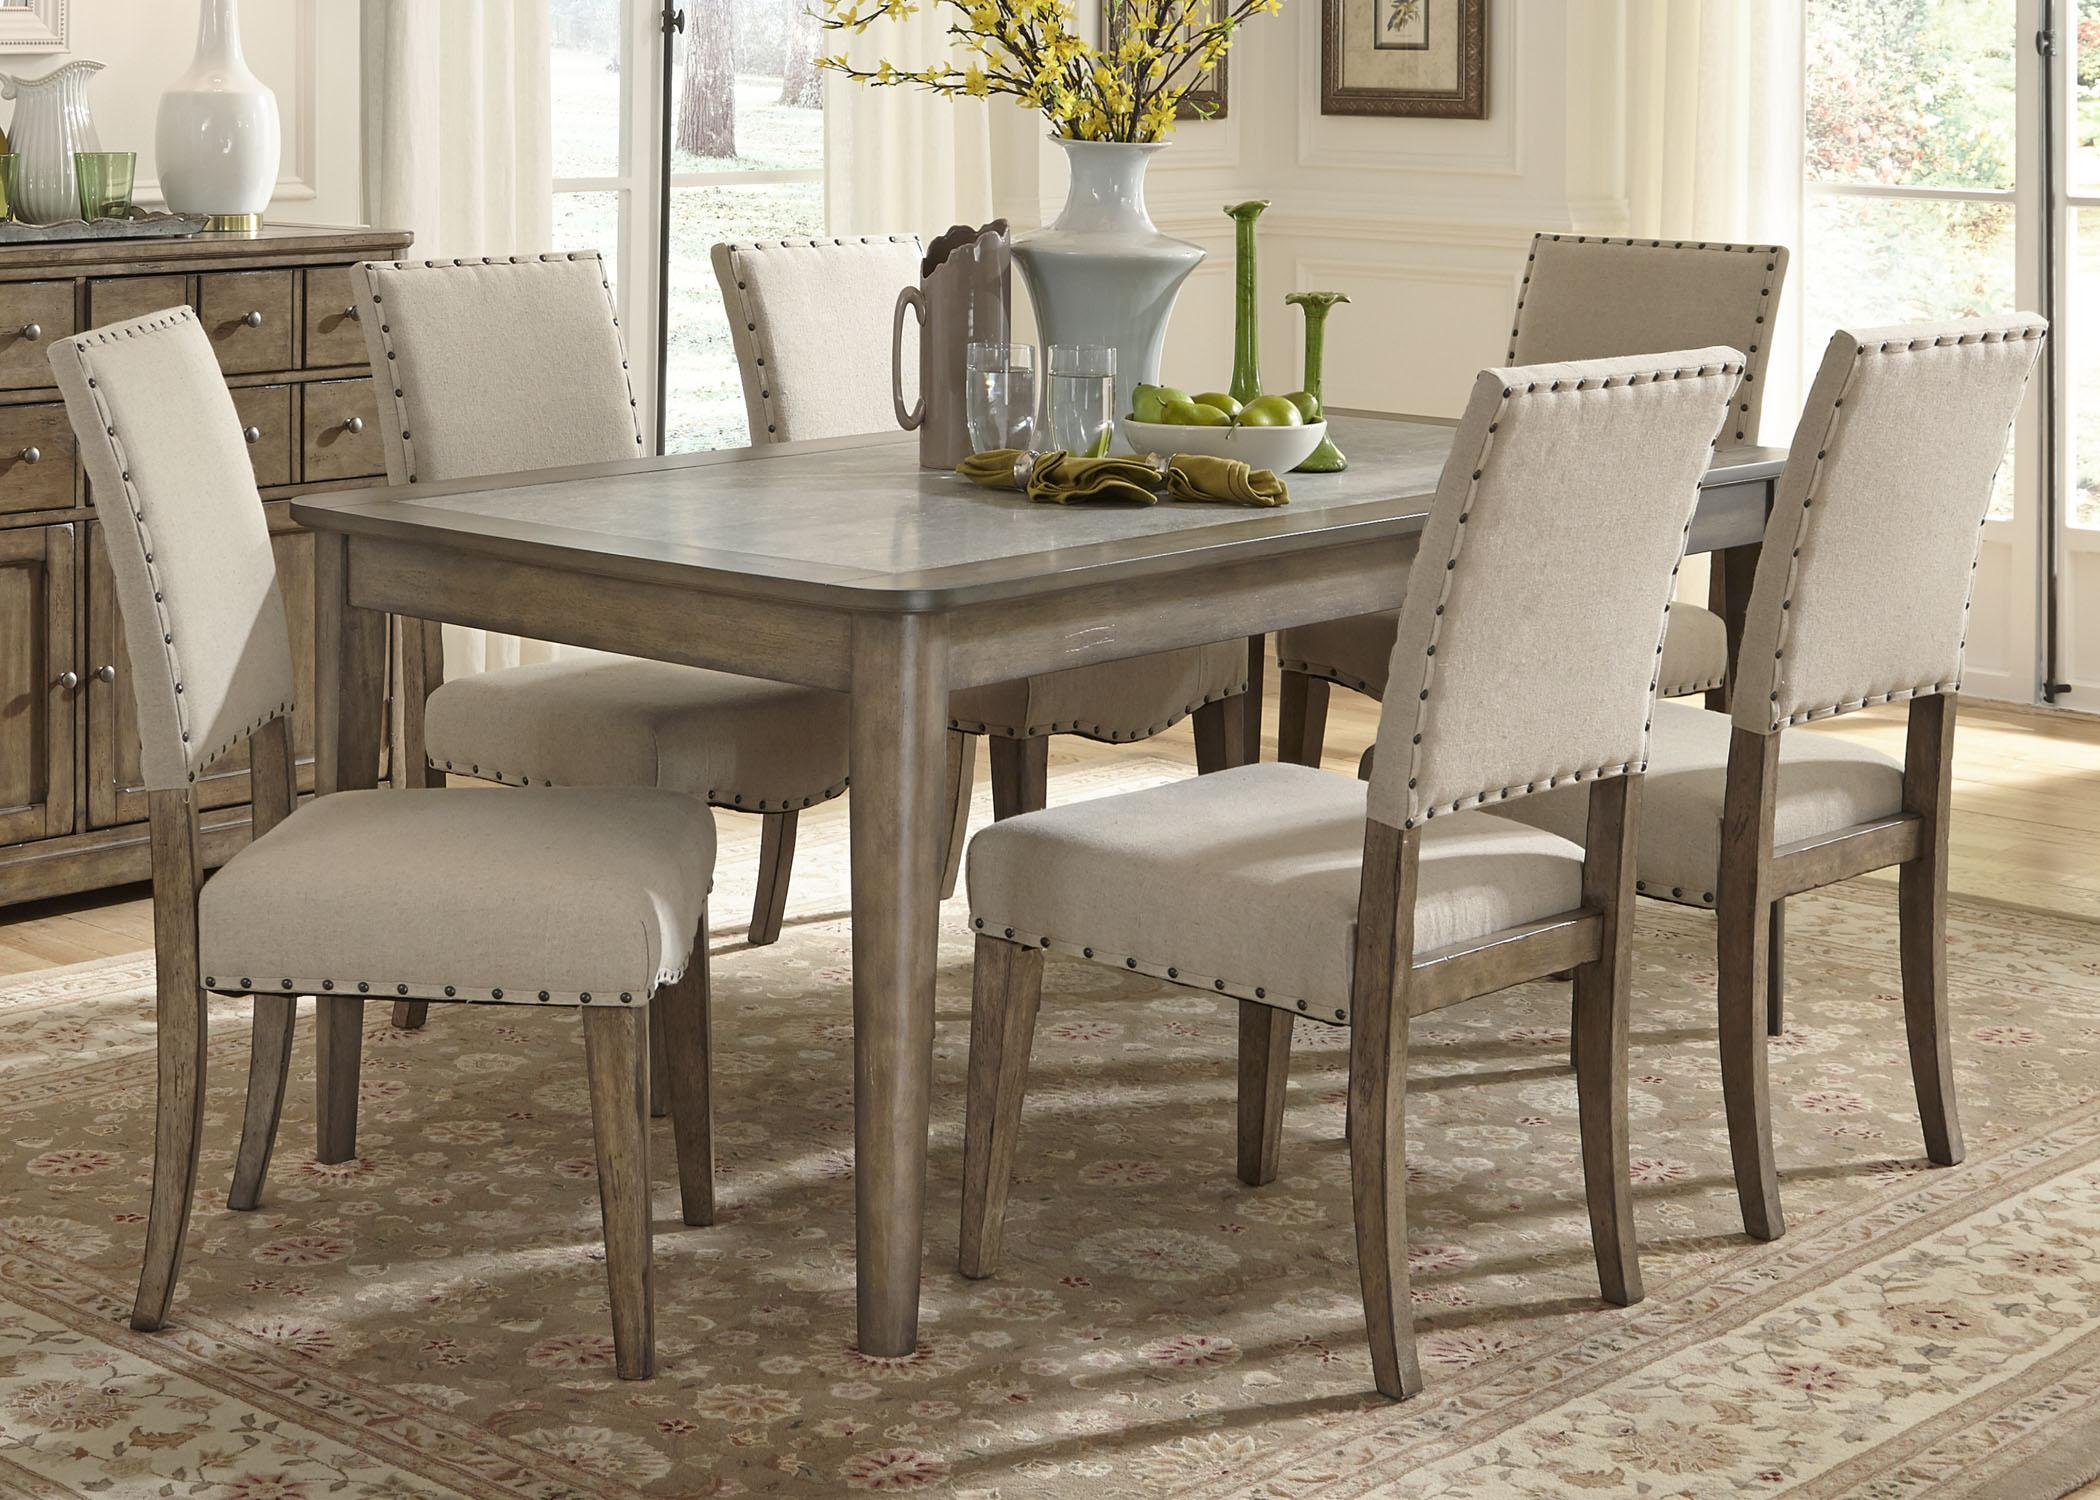 Beau Liberty Furniture Weatherford Casual Dining Room Group   Item Number: 645  Dining Room Group 2